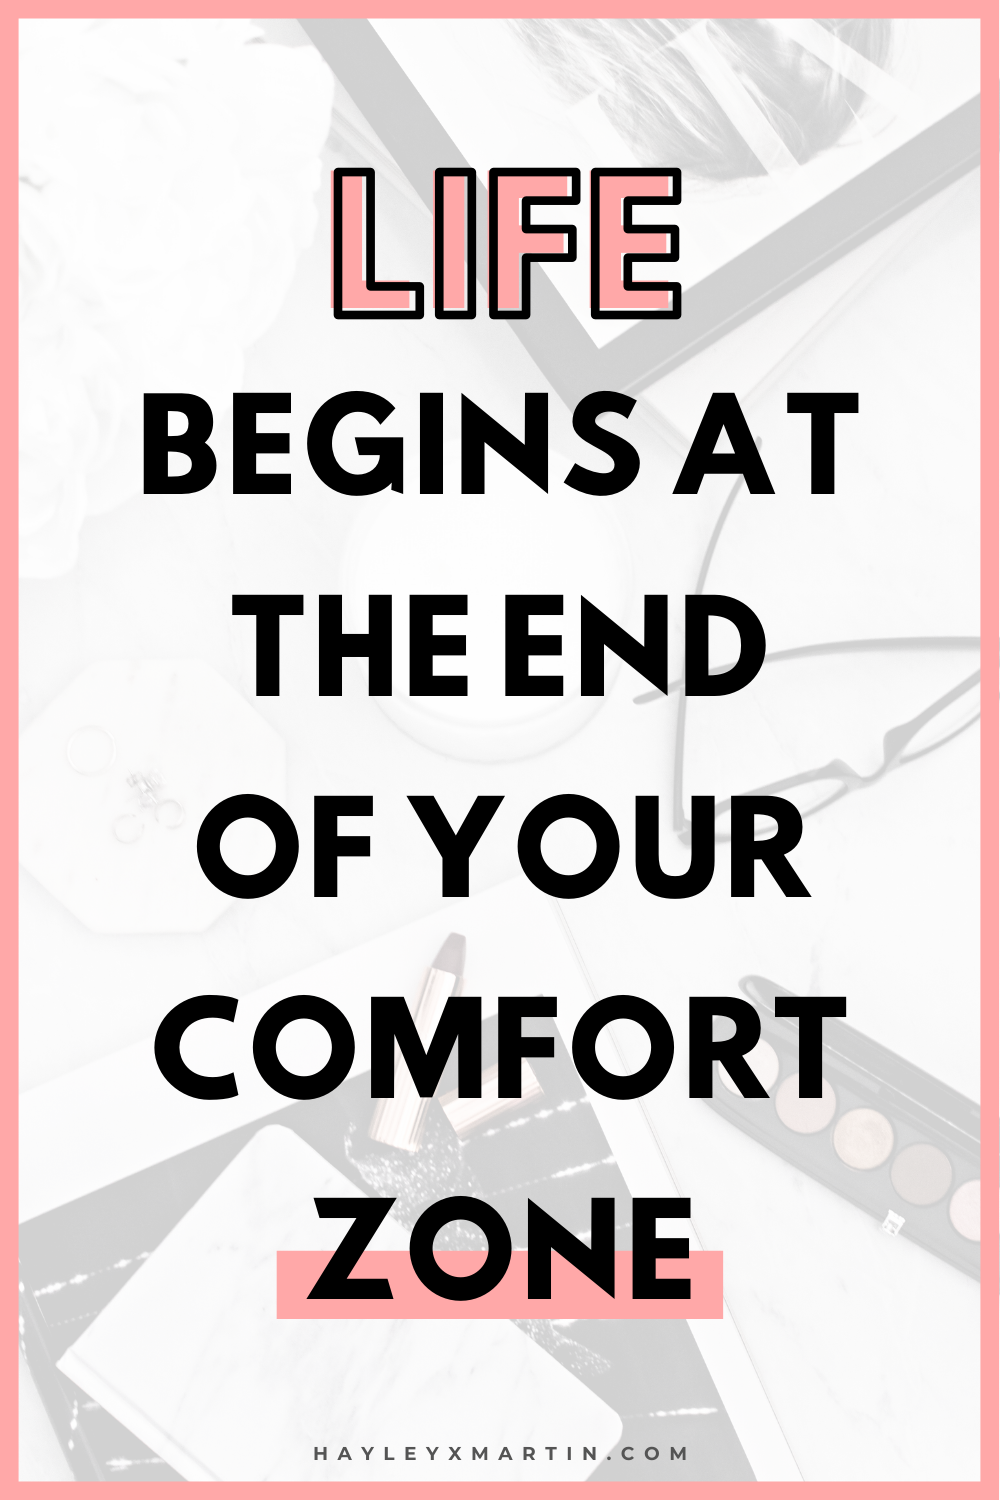 LIFE BEGINS AT THE END OF YOUR COMFORT ZONE | HAYLEYXMARTIN